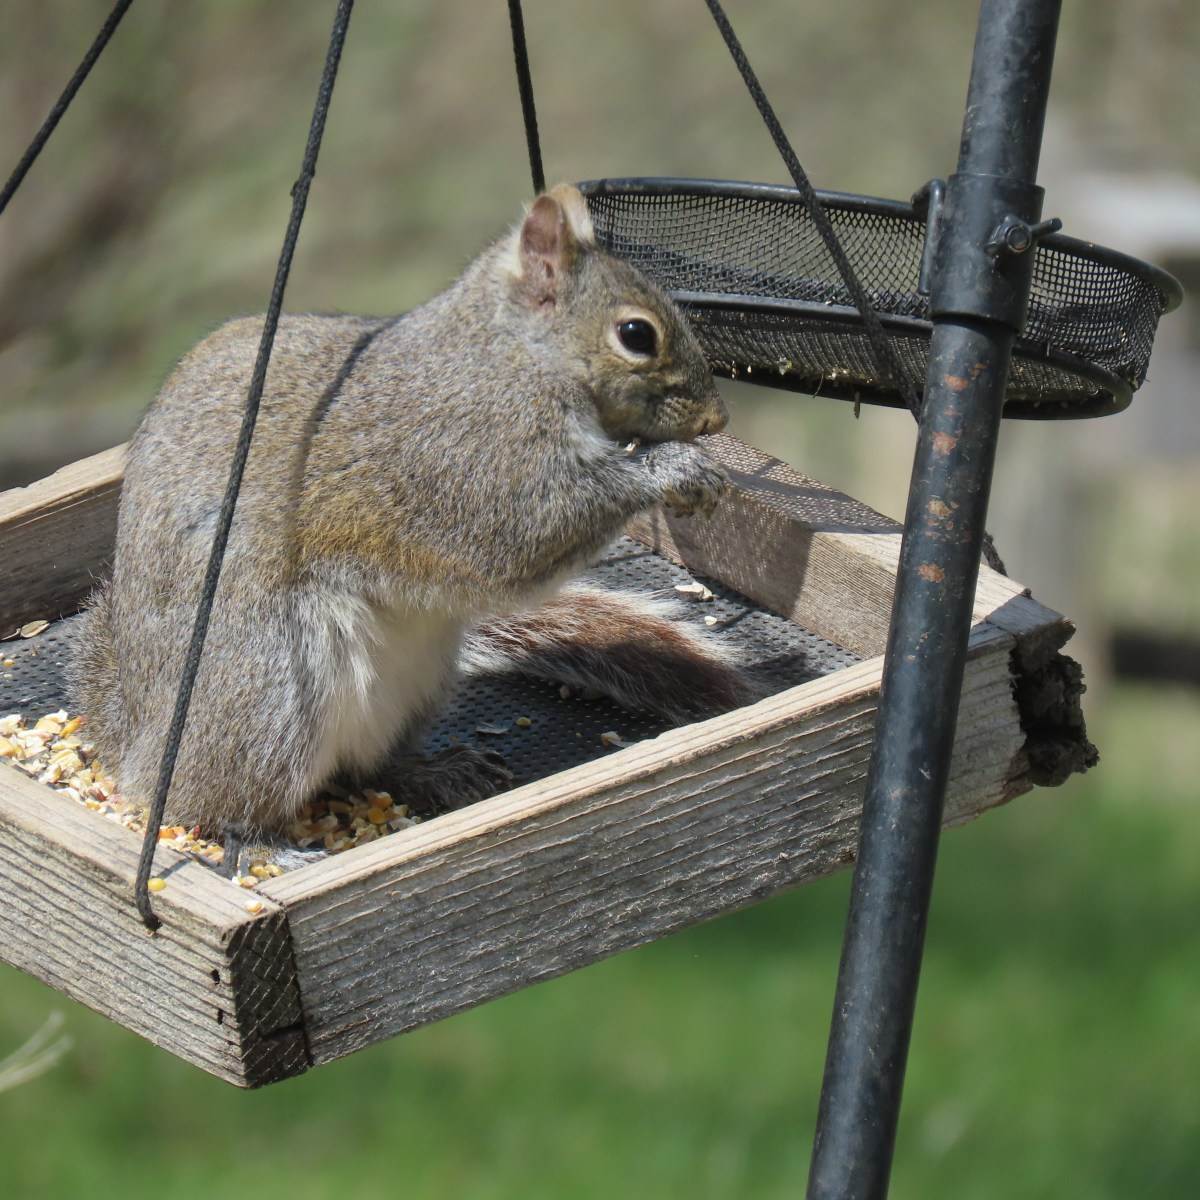 A squirrel sits inside a platform bird feeder and eats from it